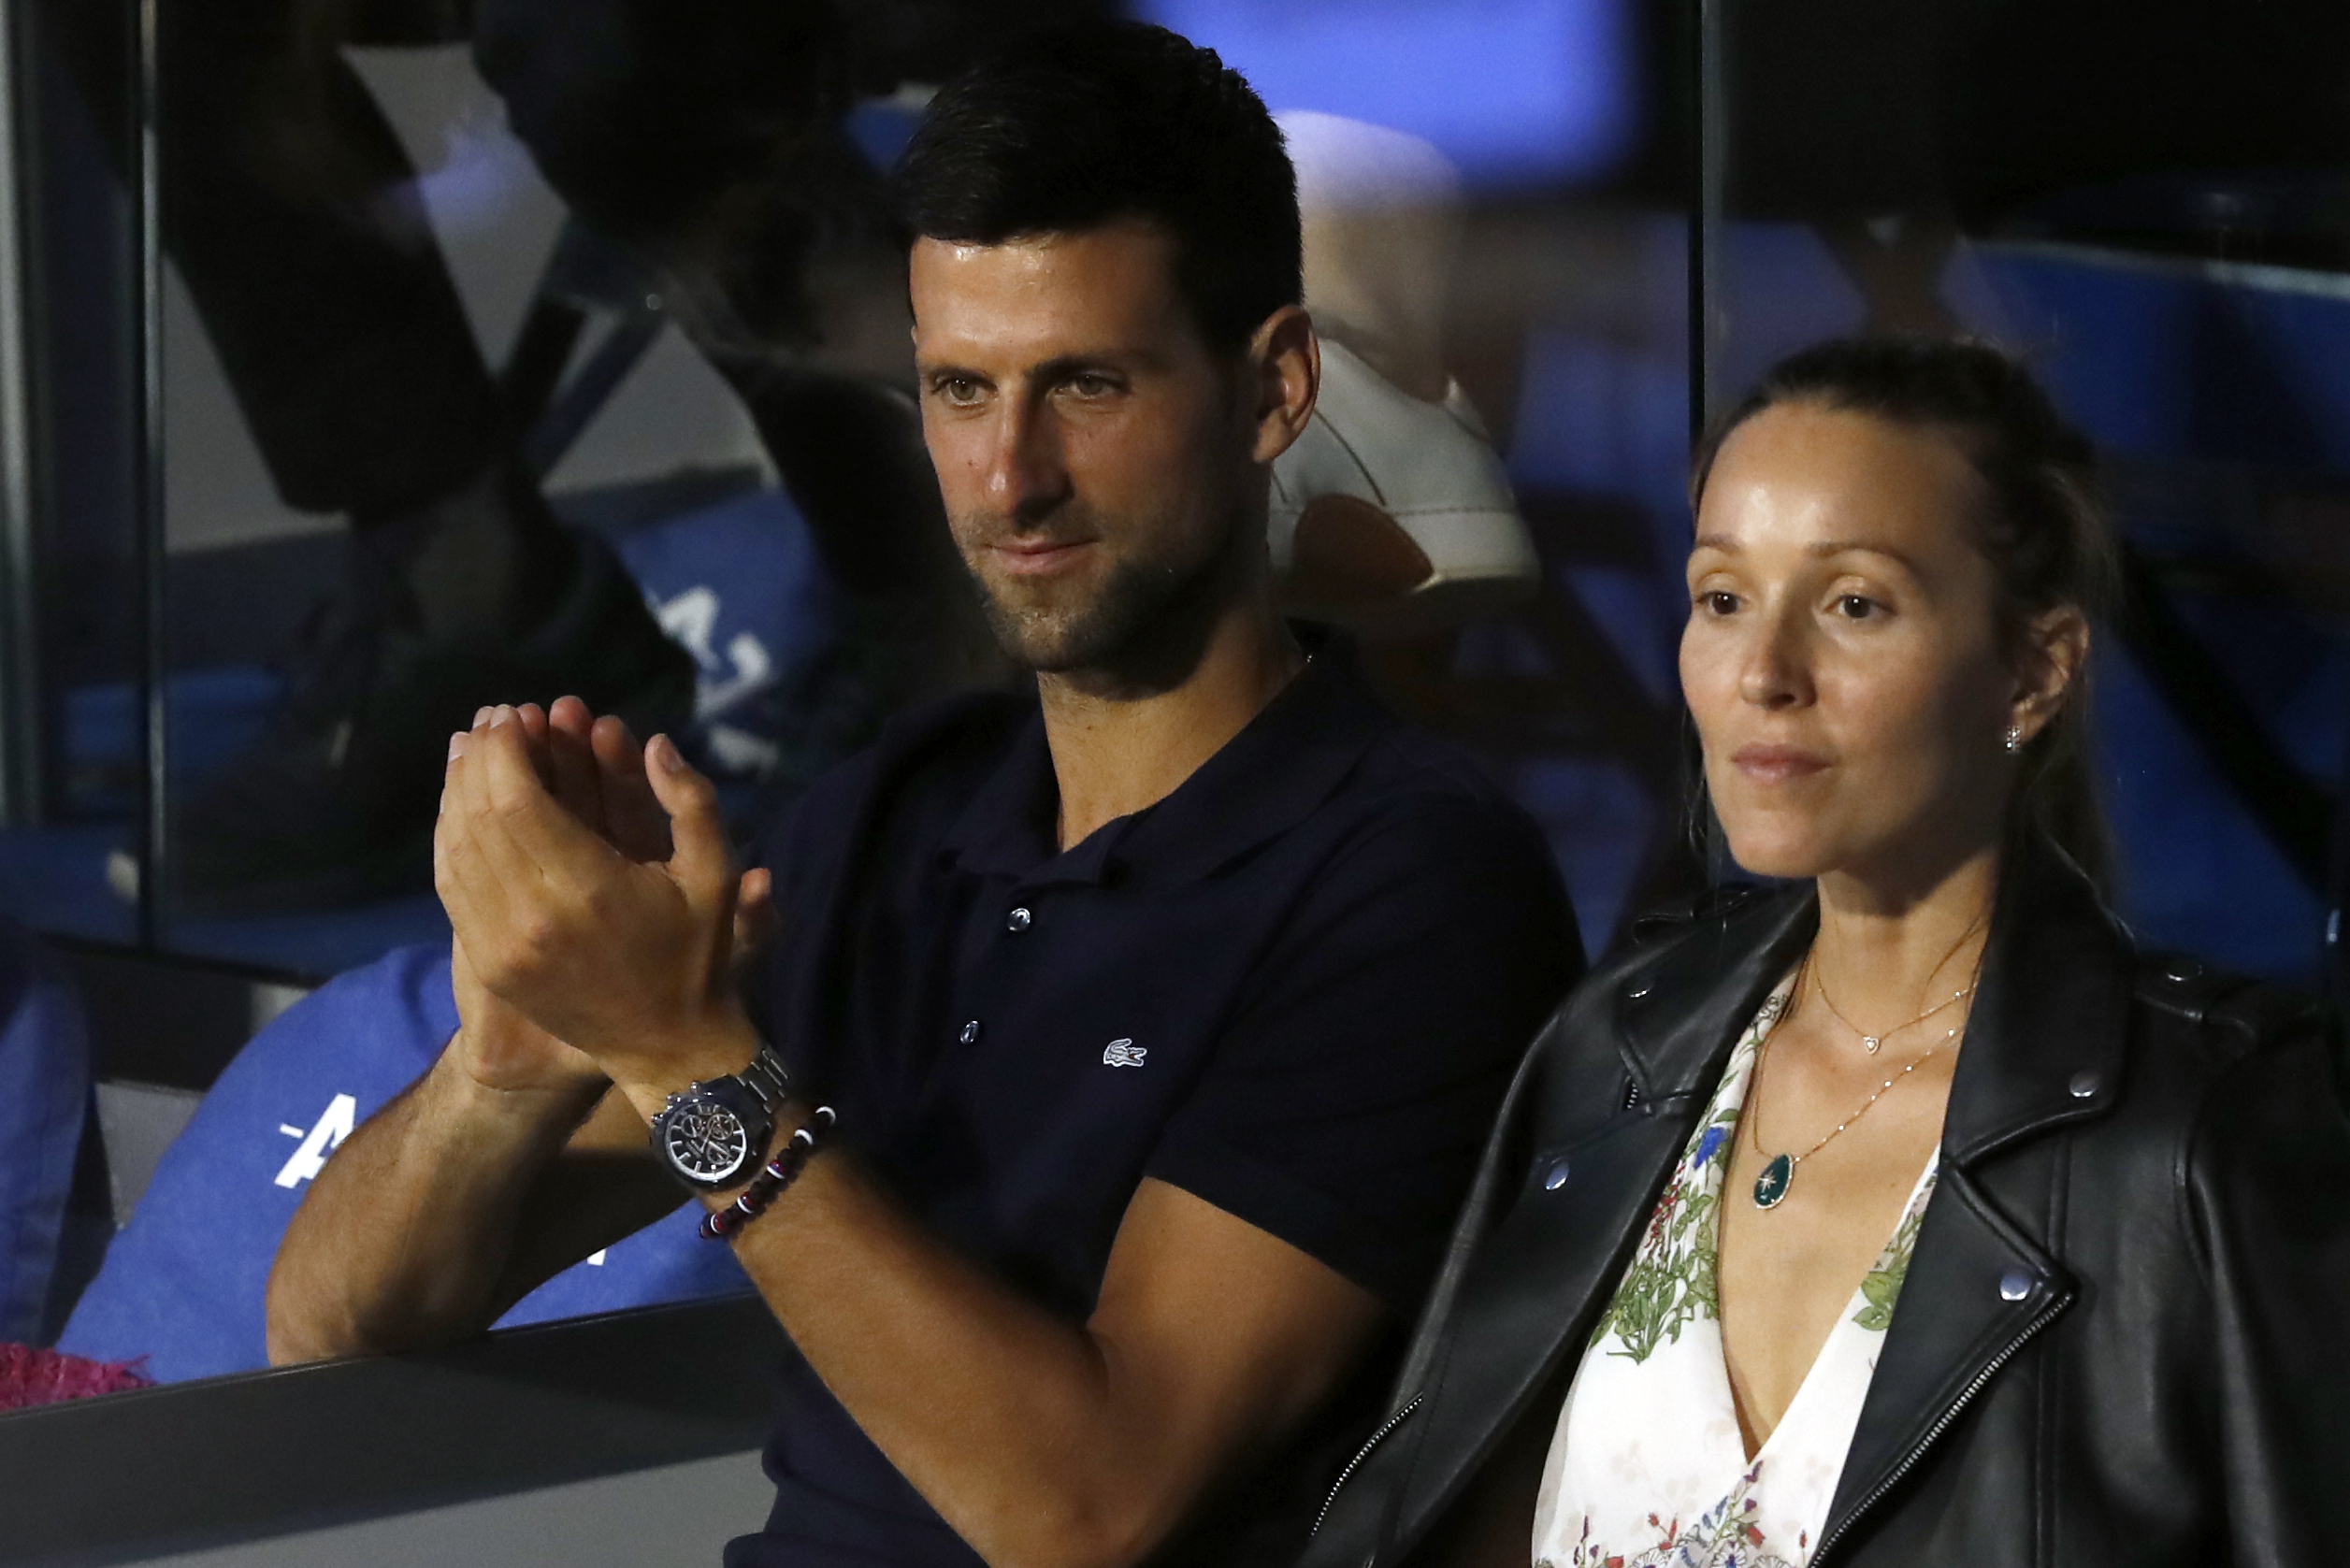 Novak Djokovic Wife Jelena Test Negative For Covid 19 10 Days After Diagnosis Bleacher Report Latest News Videos And Highlights